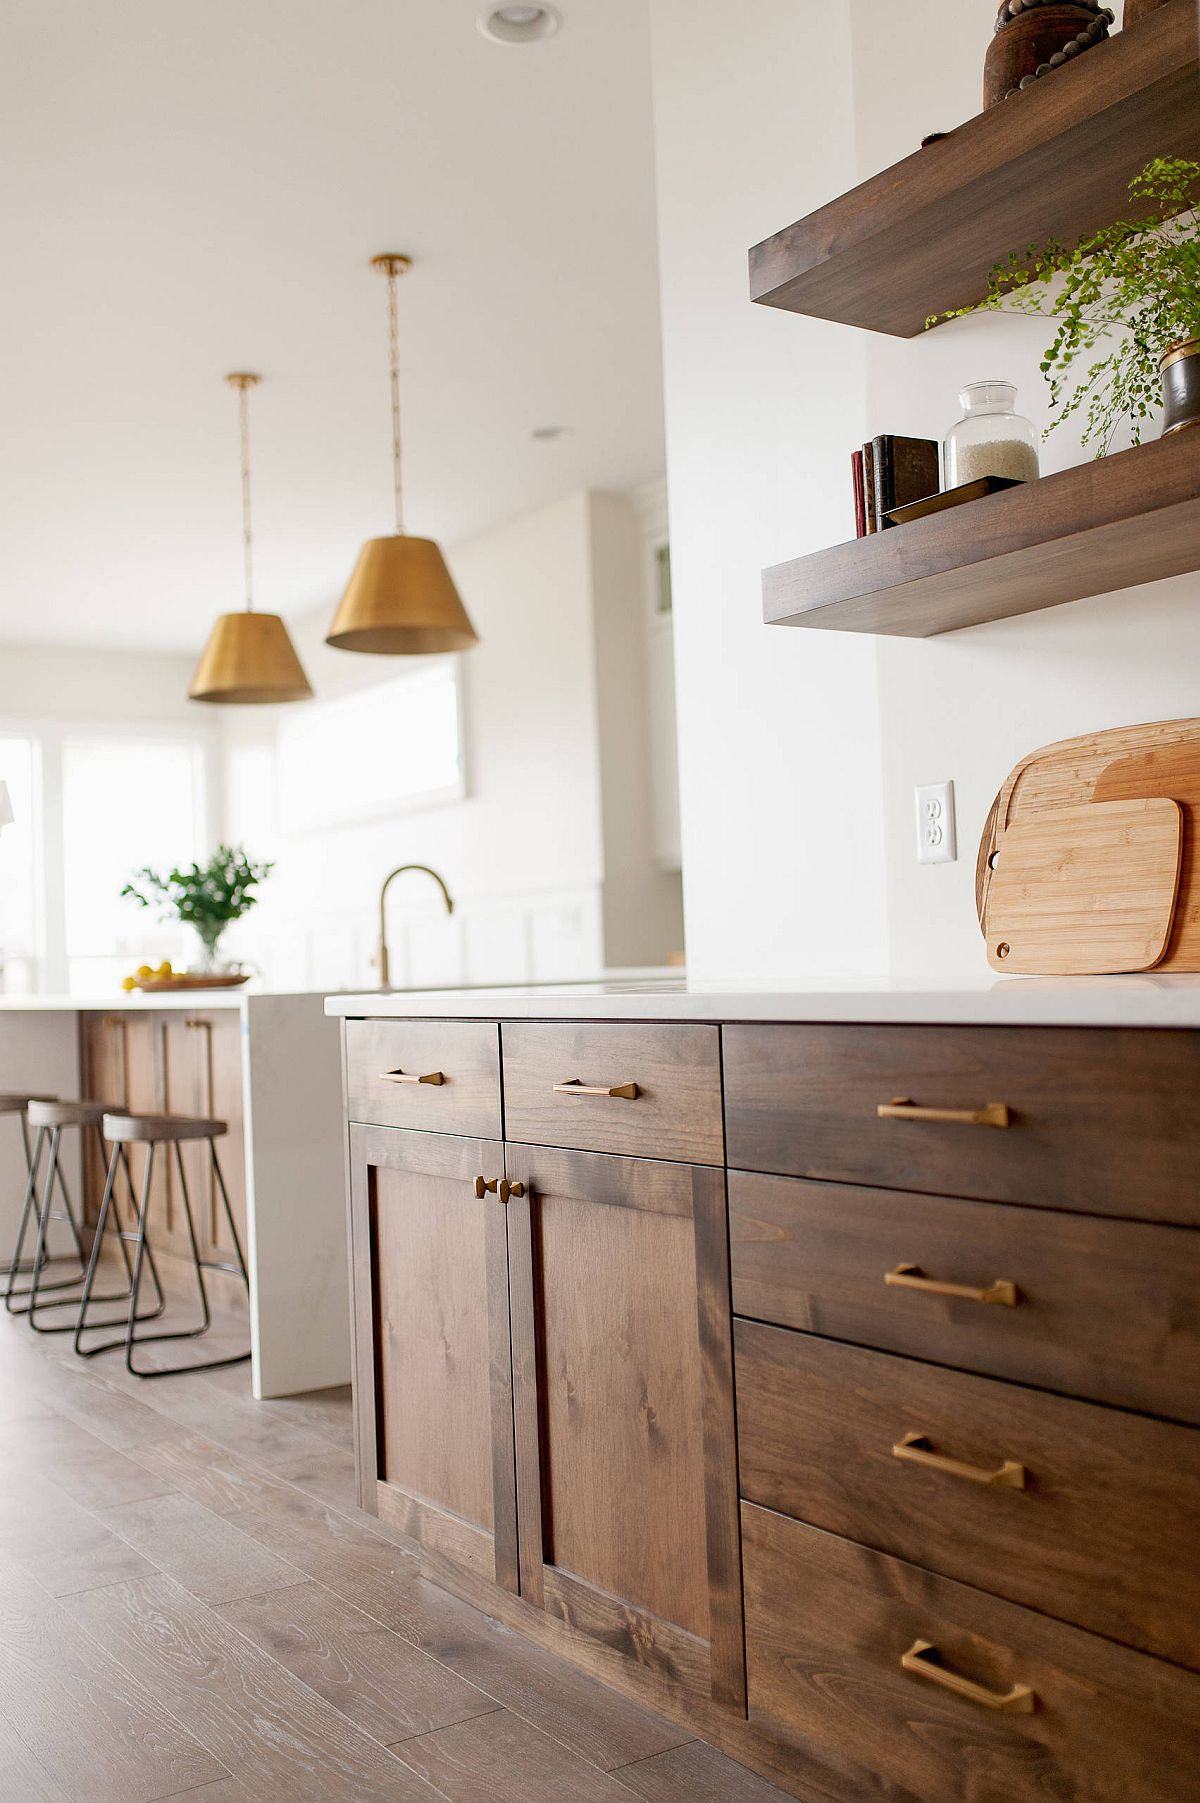 Sleek-floating-shelves-and-shaker-style-cabinets-in-wood-for-the-modern-farmhouse-kitchen-34452